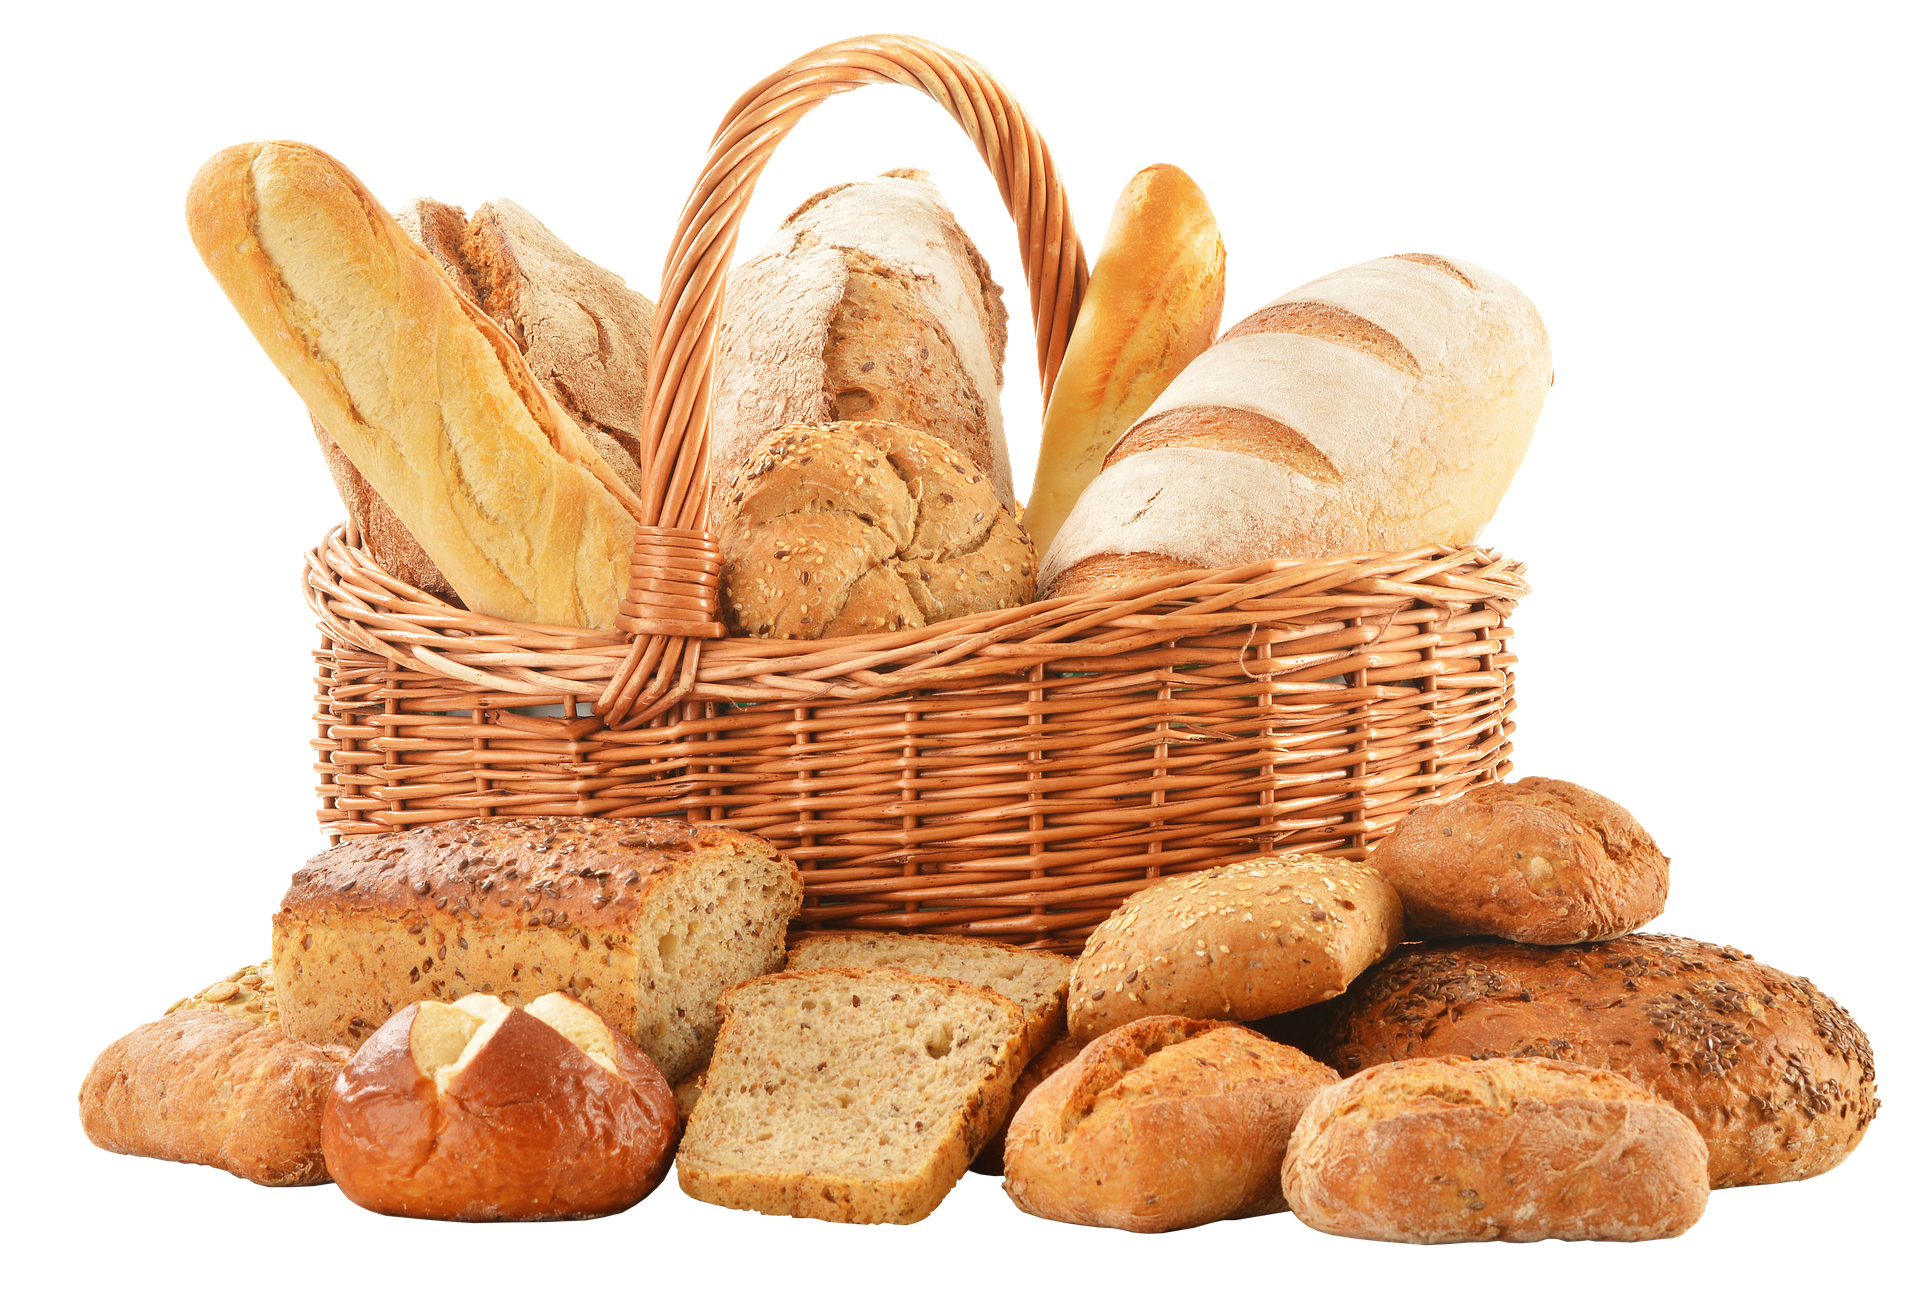 These rolls can add fiber to your diet but don't eat too much, or you will have greater difficulties ahead!